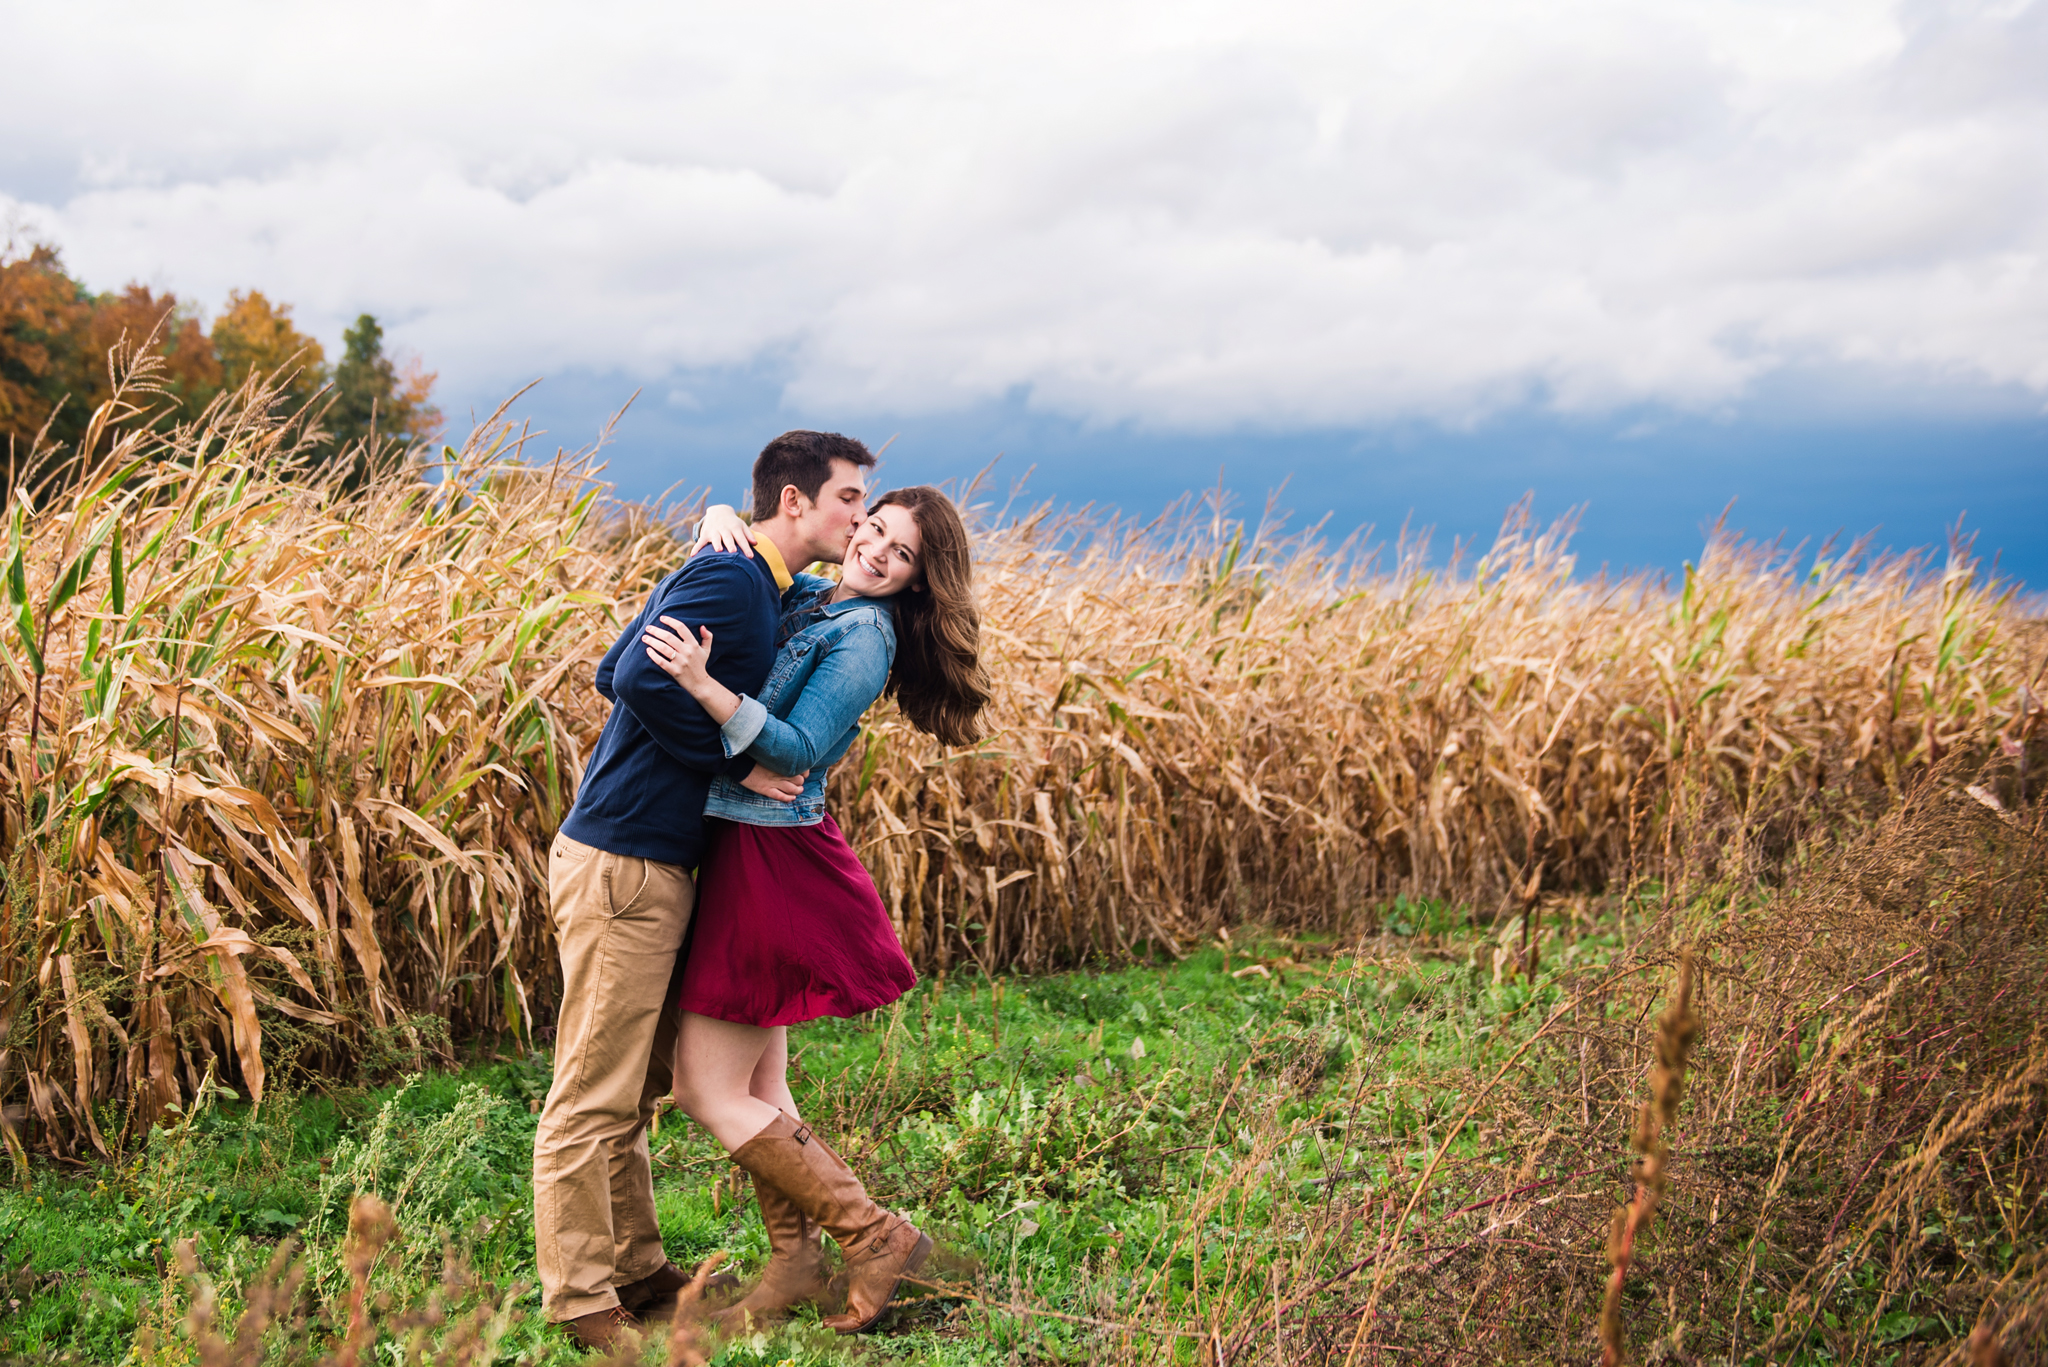 Becker_Farms_Buffalo_Engagement_Session_JILL_STUDIO_Rochester_NY_Photographer_DSC_4716.jpg